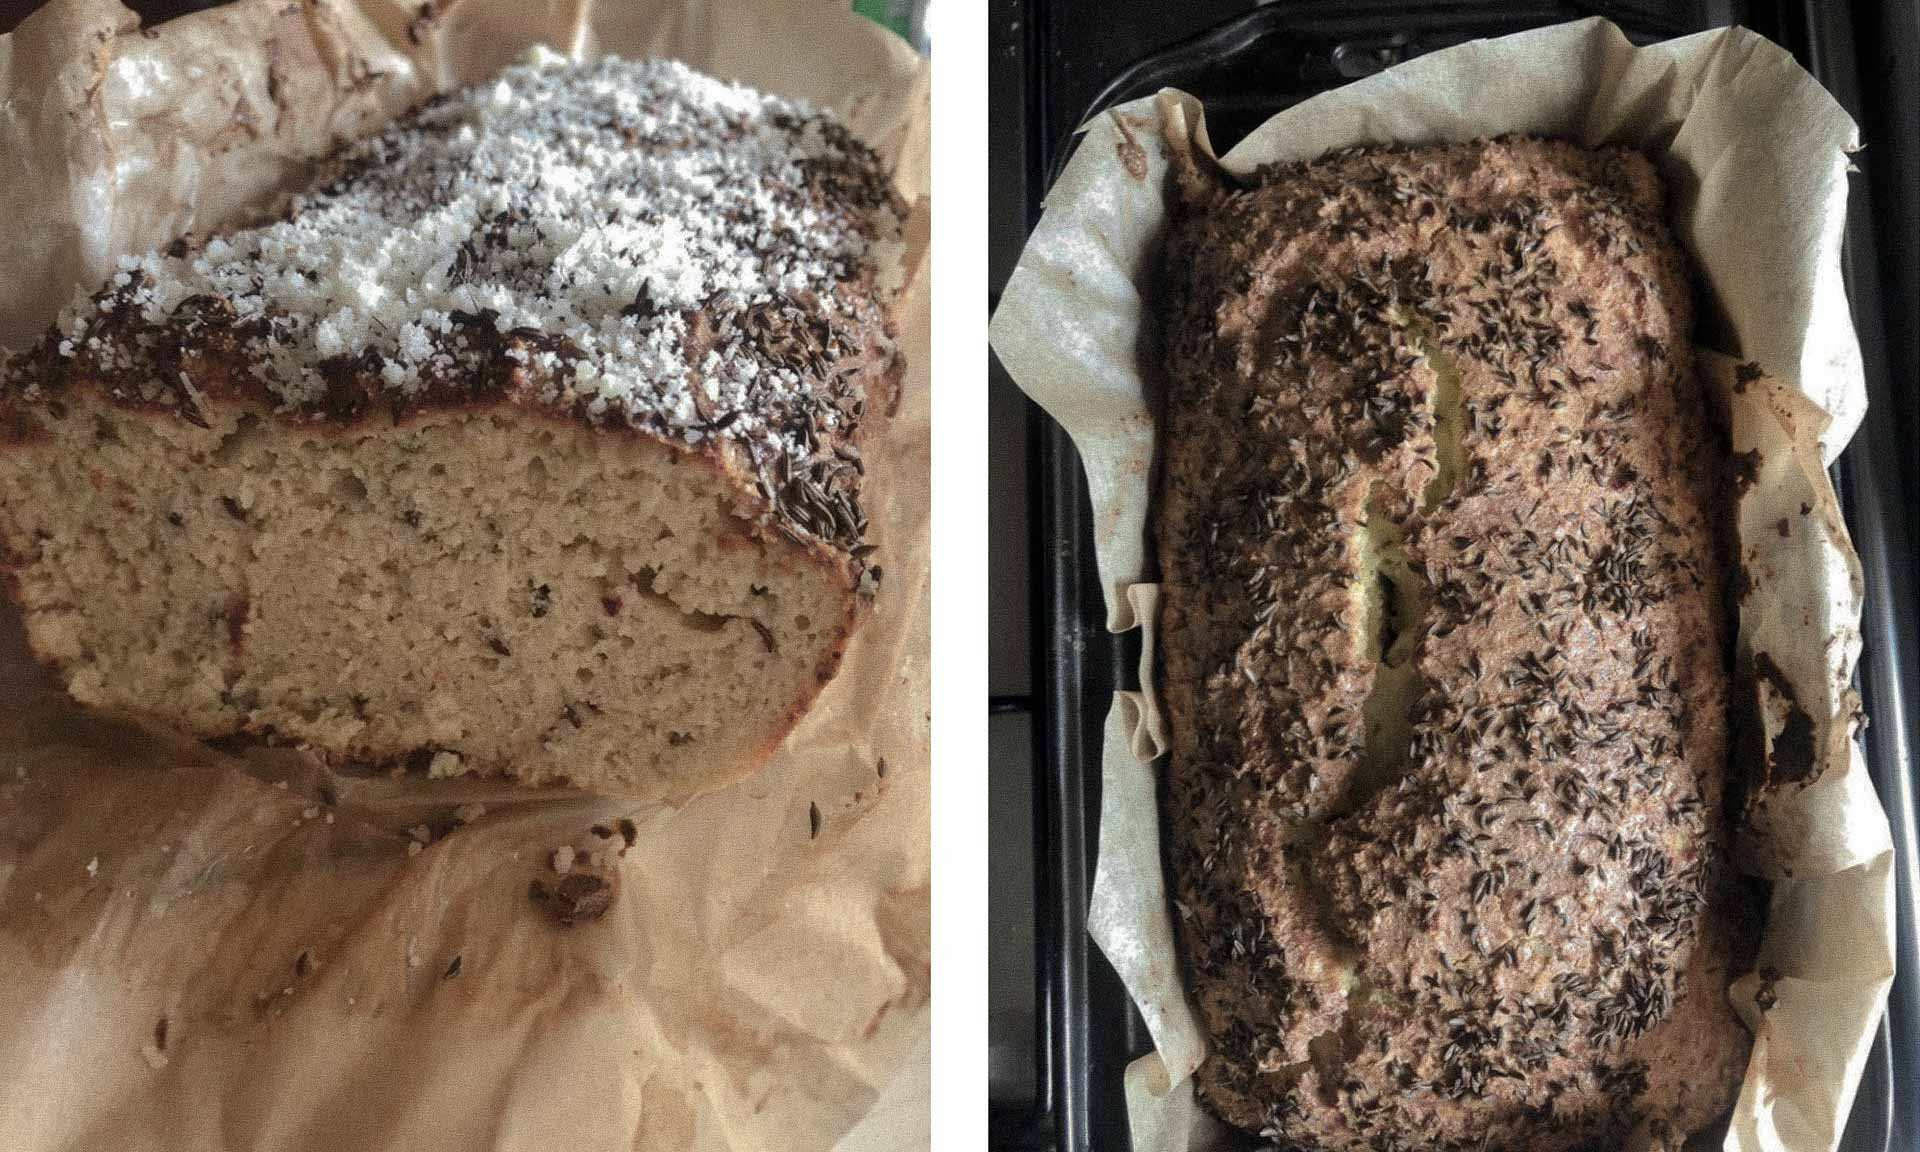 Low carb bread made of cauliflower and almond flour